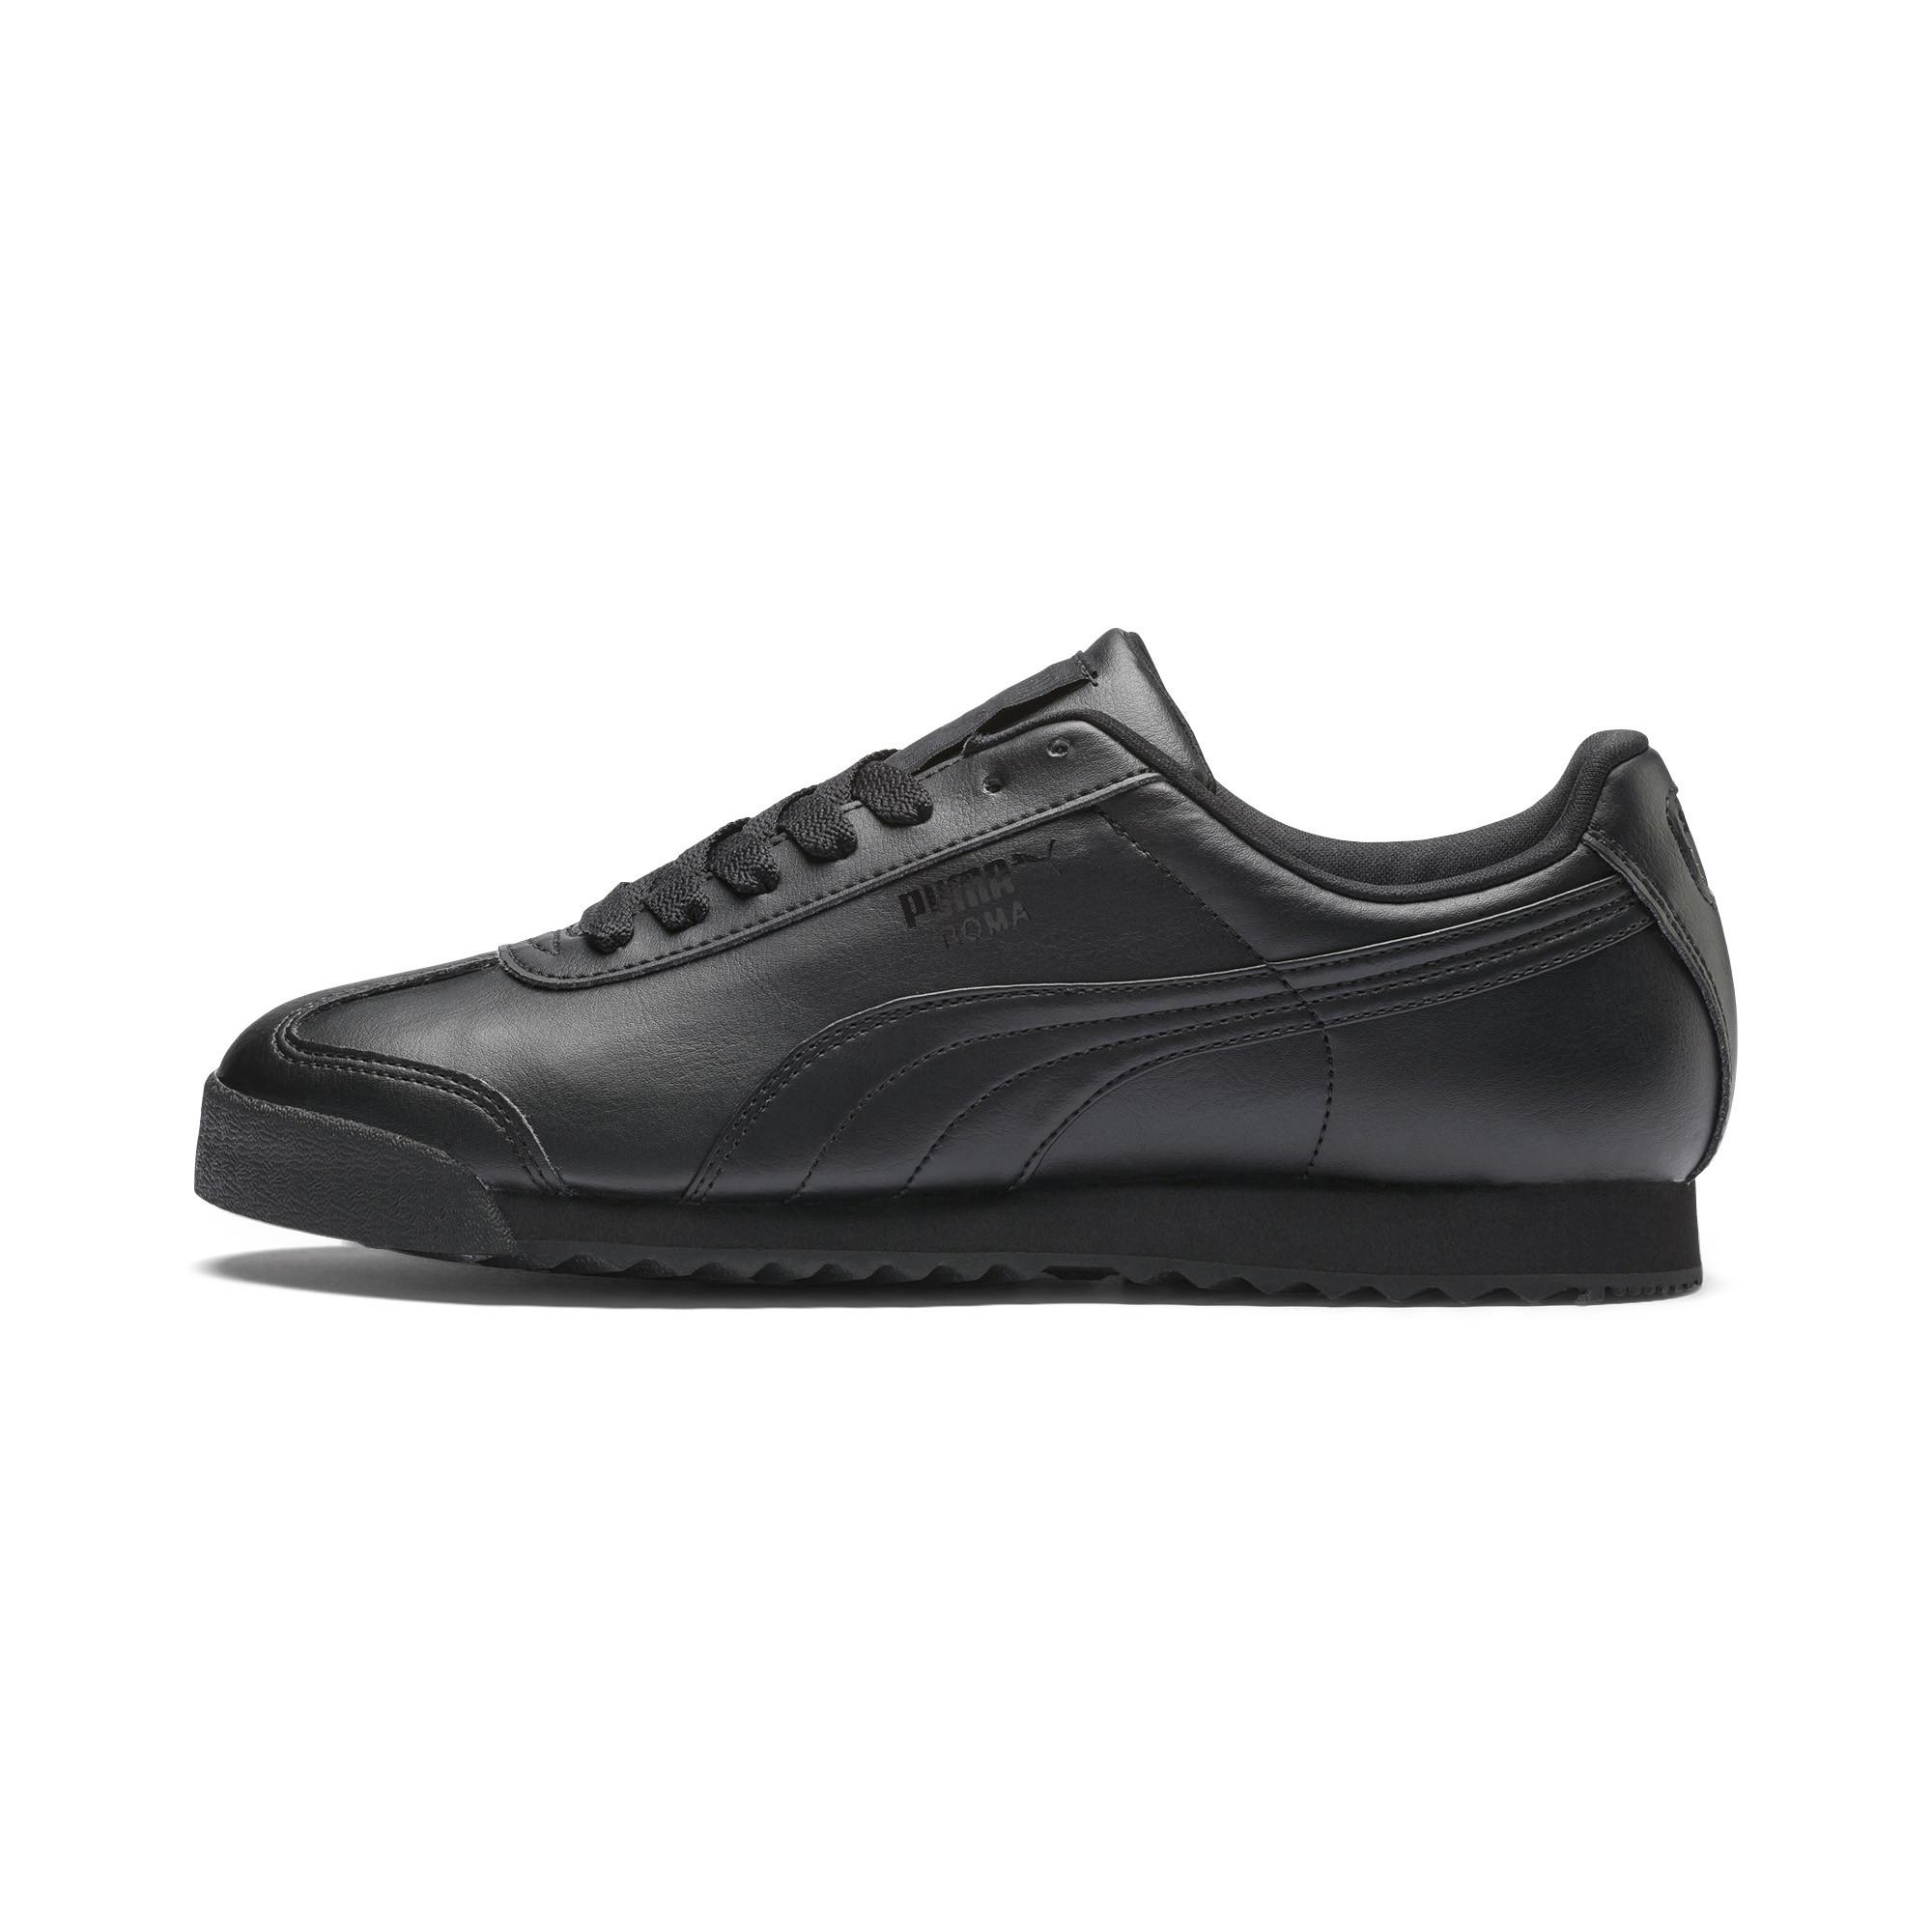 c764a43cad94 Lyst - PUMA Roma Basic Sneakers in Black for Men